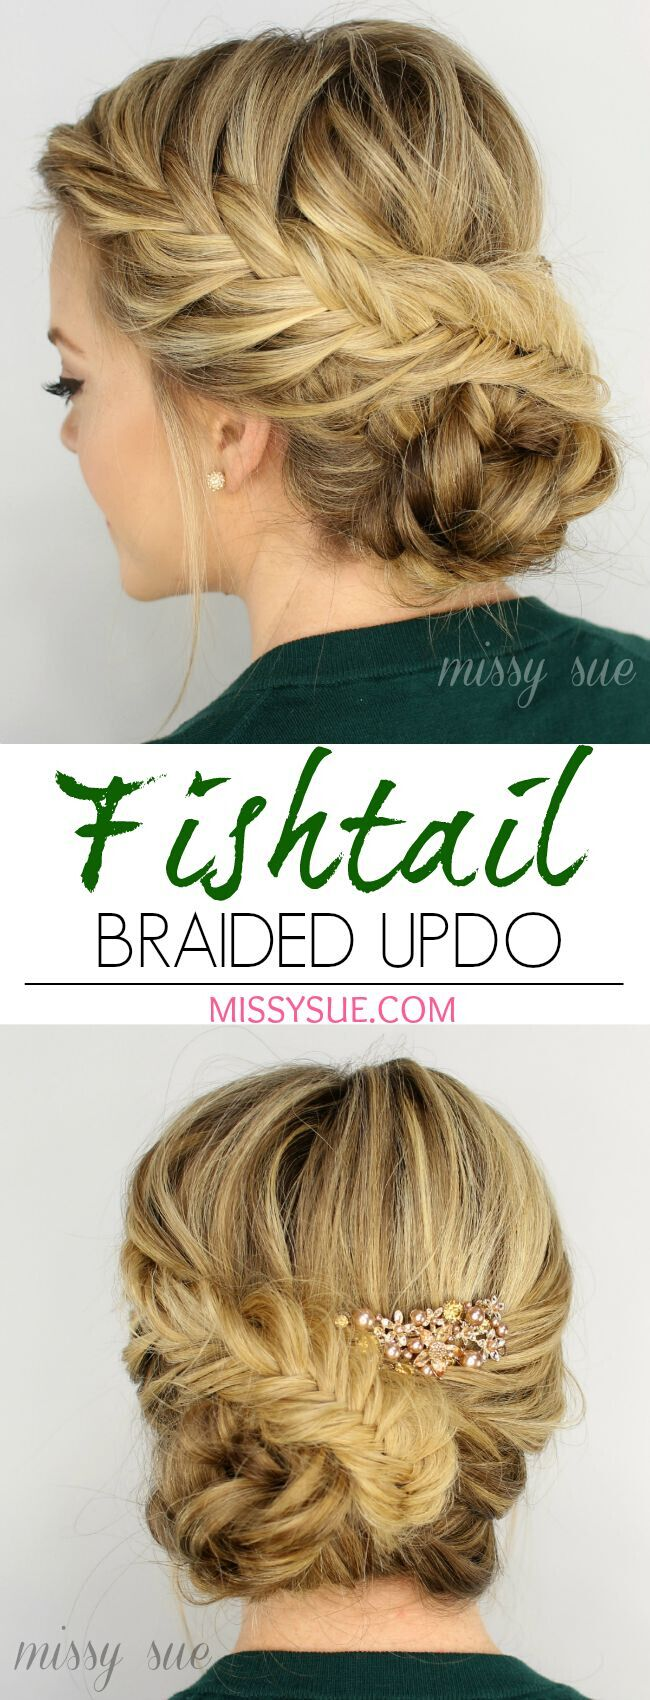 French Fishtail Braided Updo for Blonde Long Hair